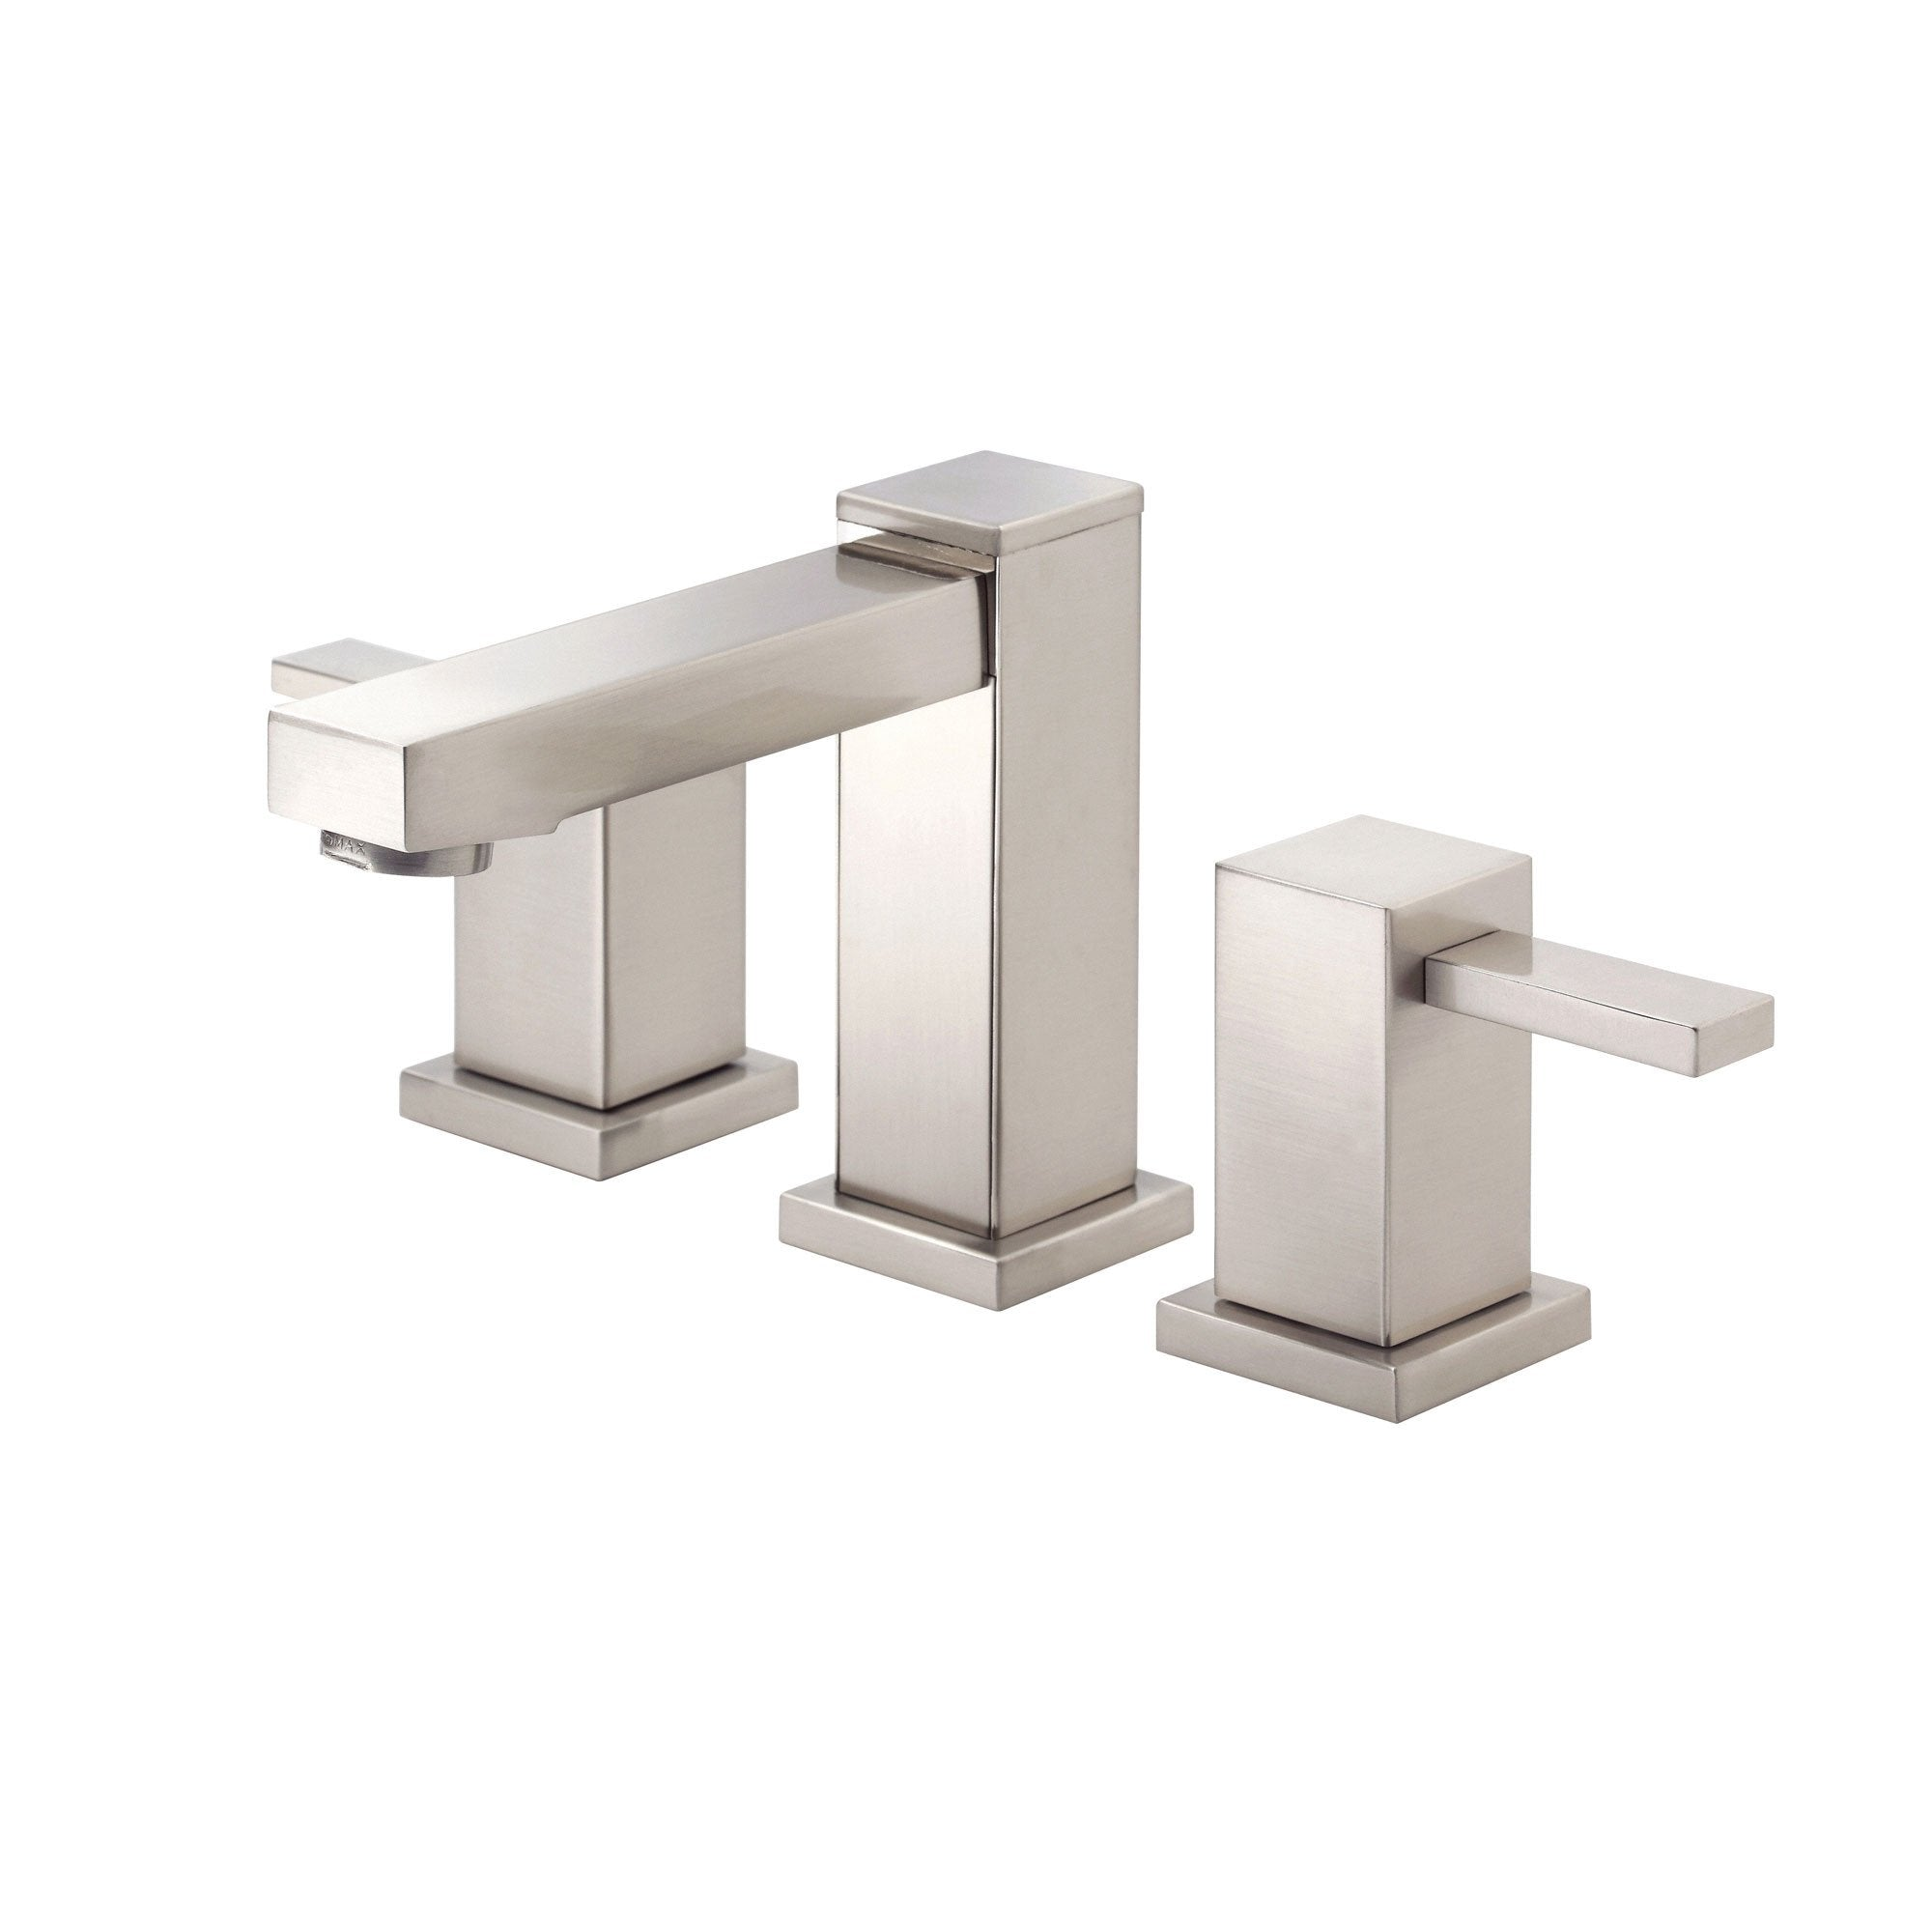 Danze Reef Brushed Nickel Modern Square 2 Handle Widespread Bathroom Sink Faucet